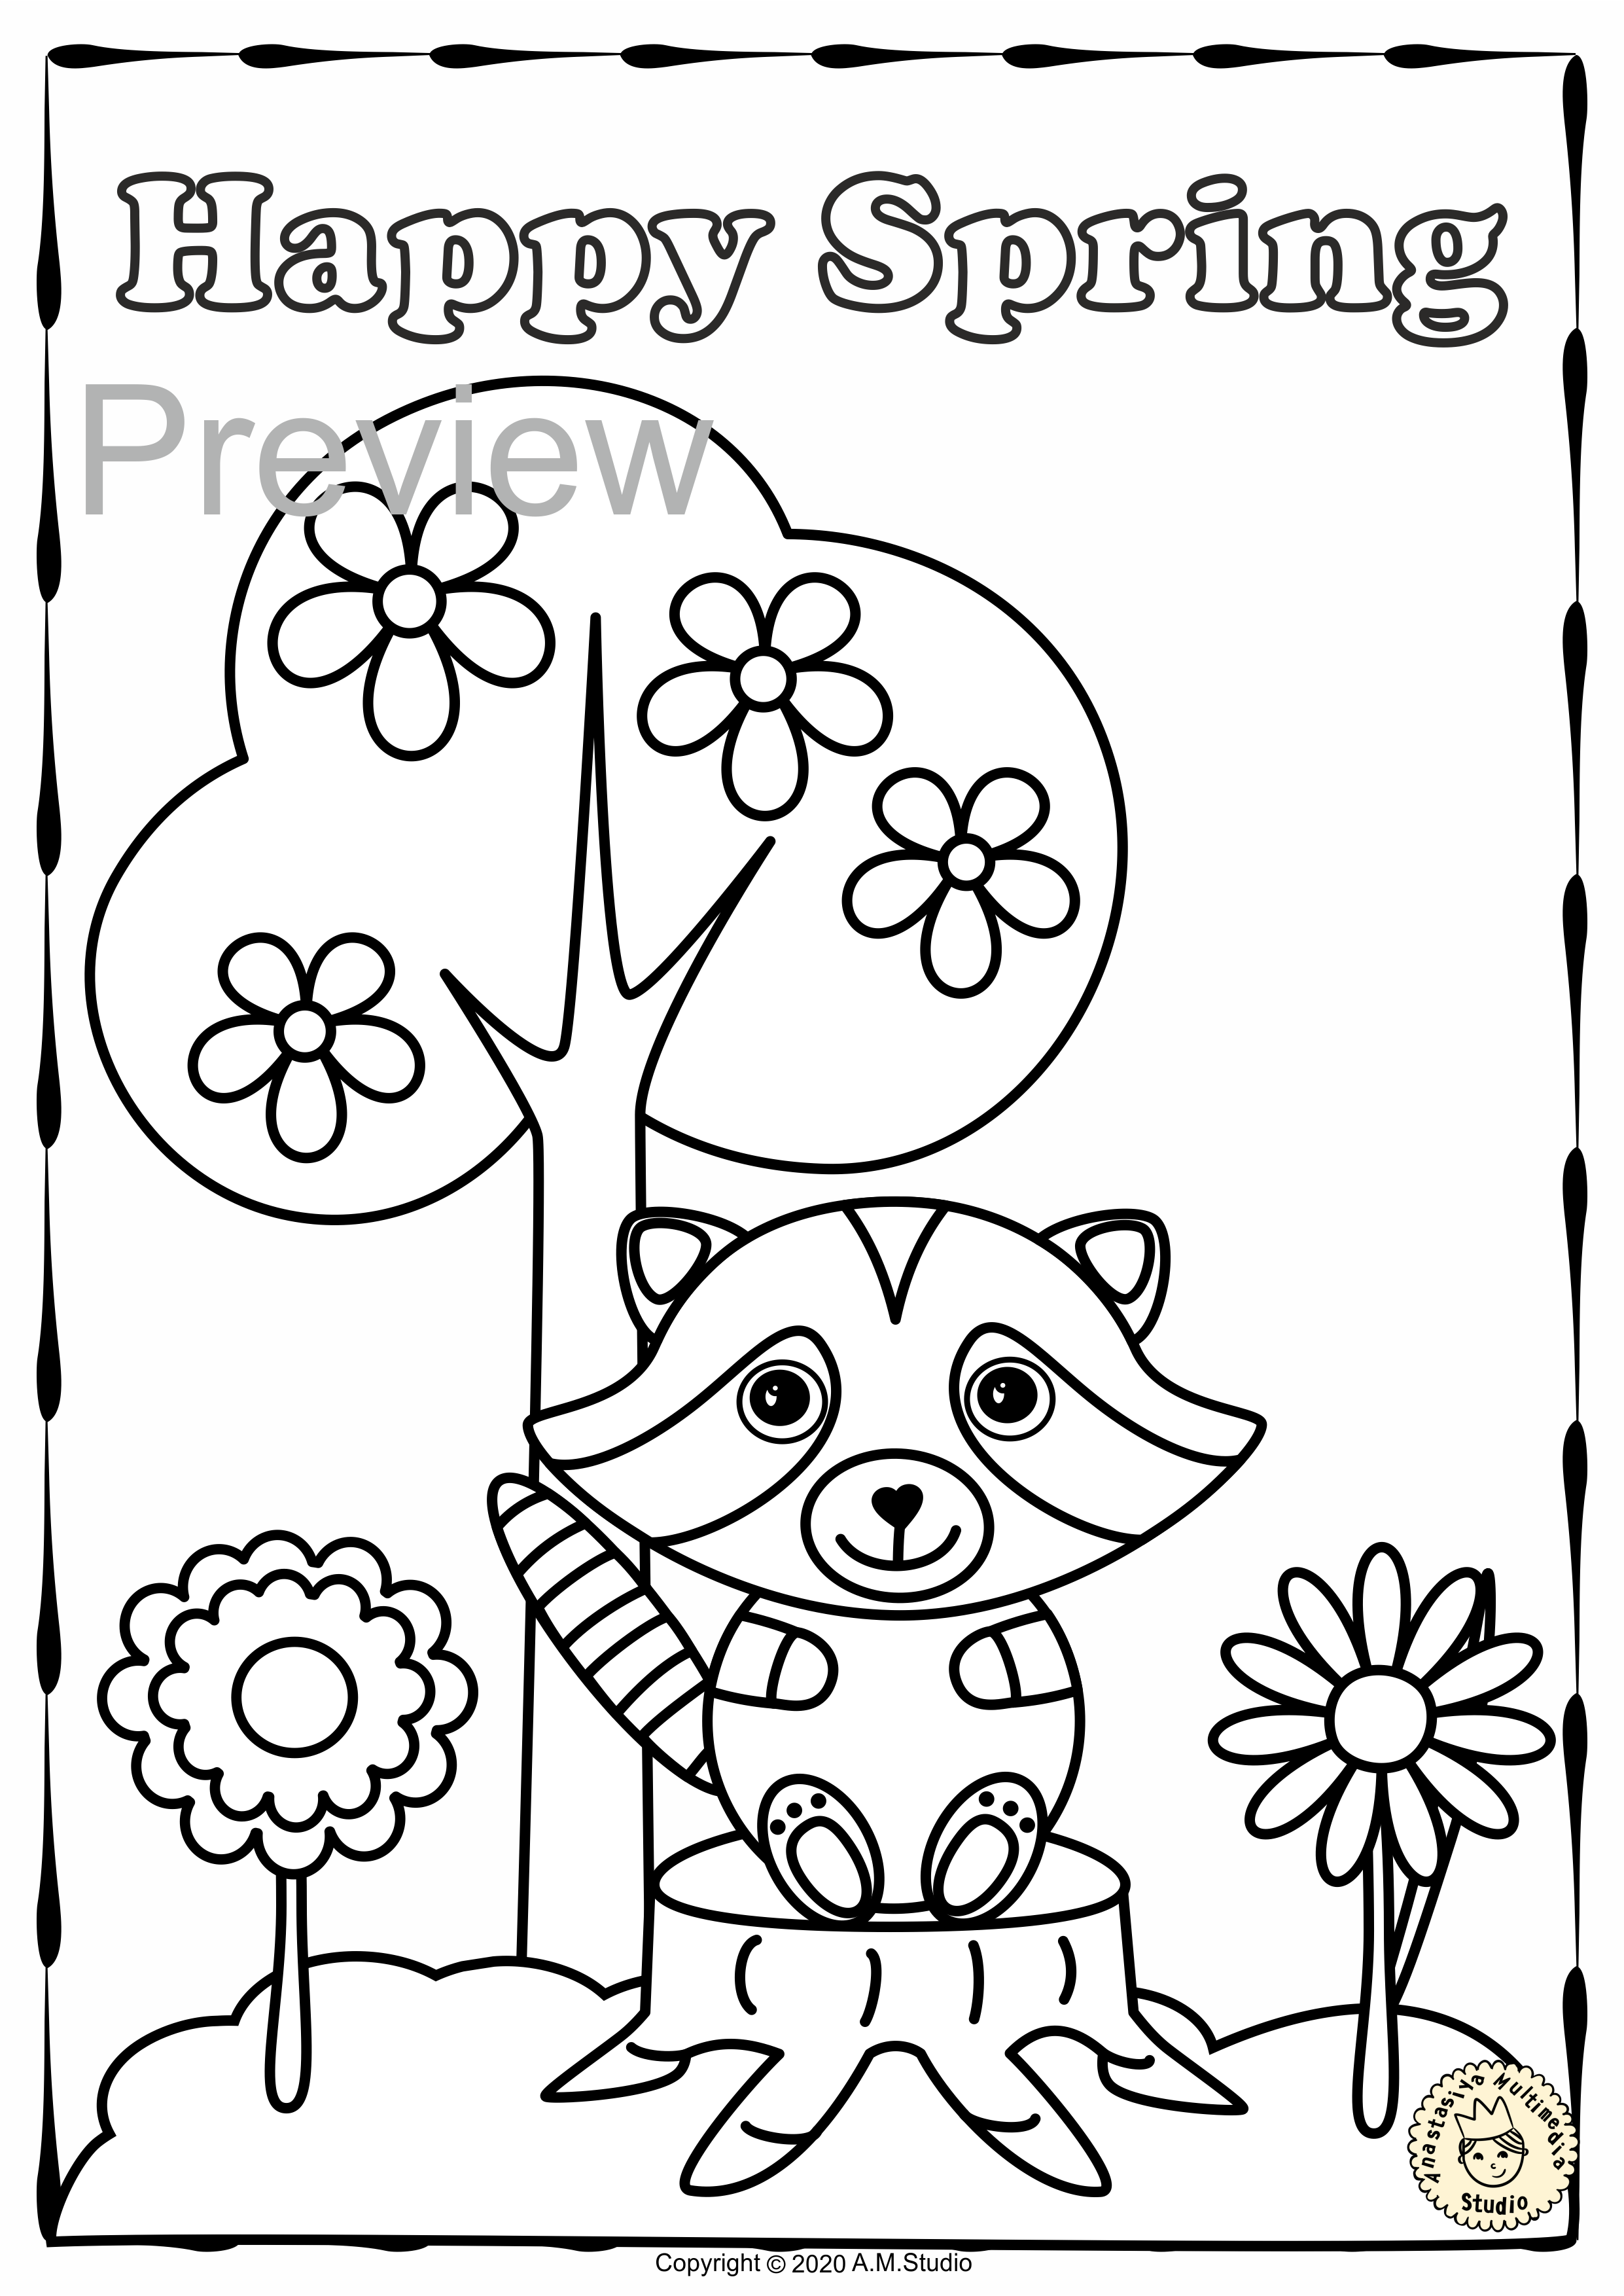 This Spring Coloring Pages Activity Includes 20 Different